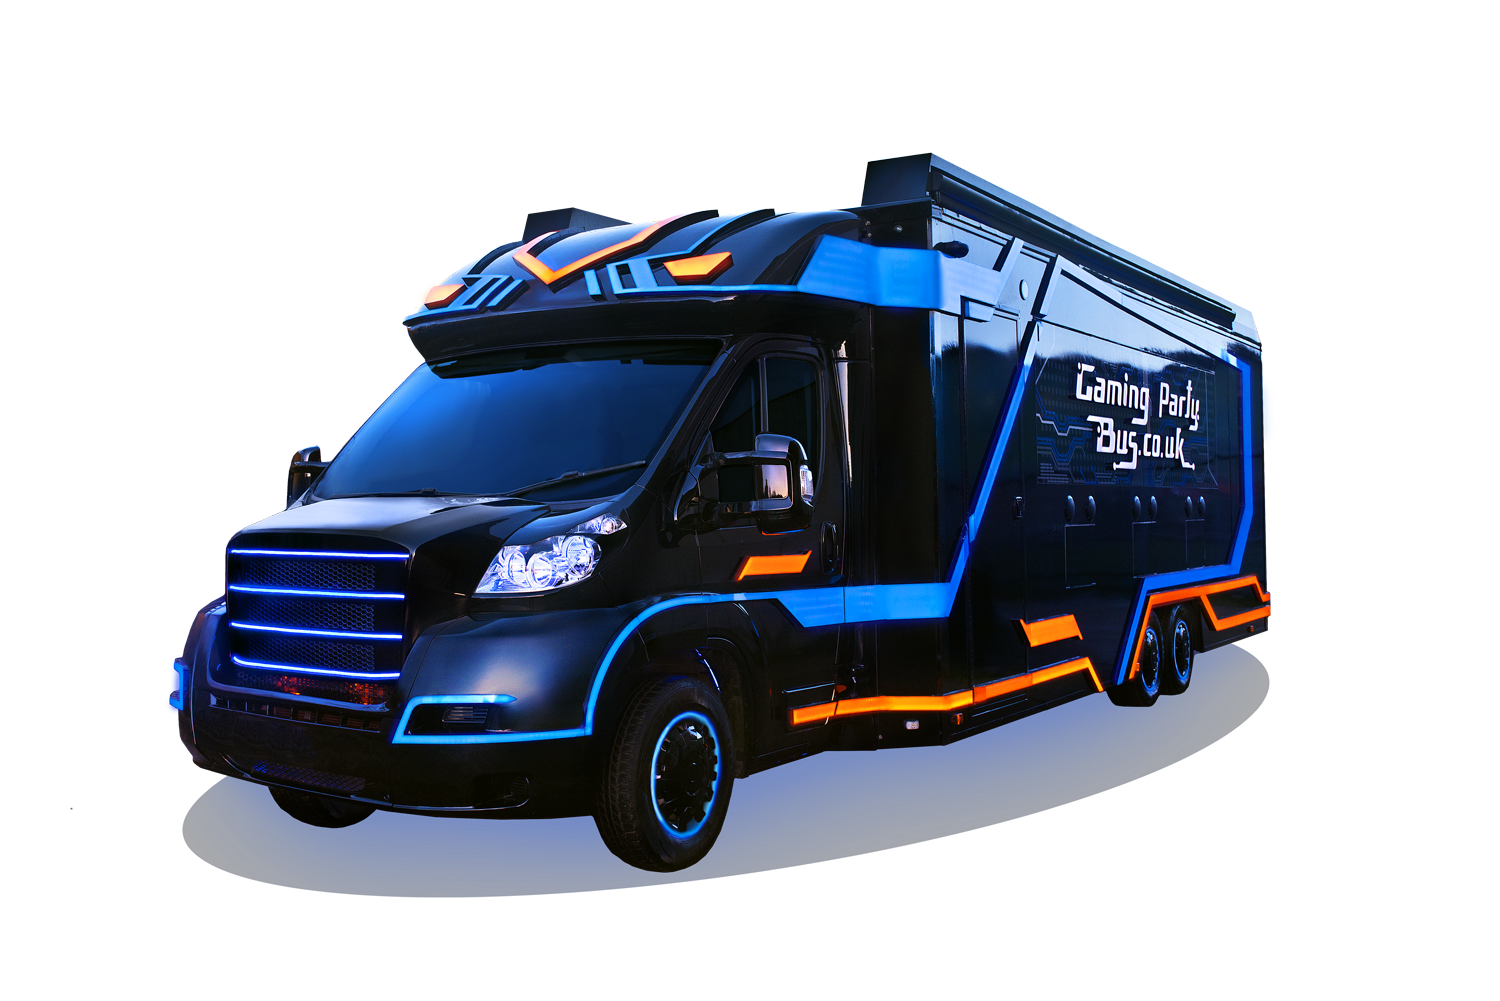 Gaming Party Bus Uk London S Mobile Video Game Wagon Kids Party Bus